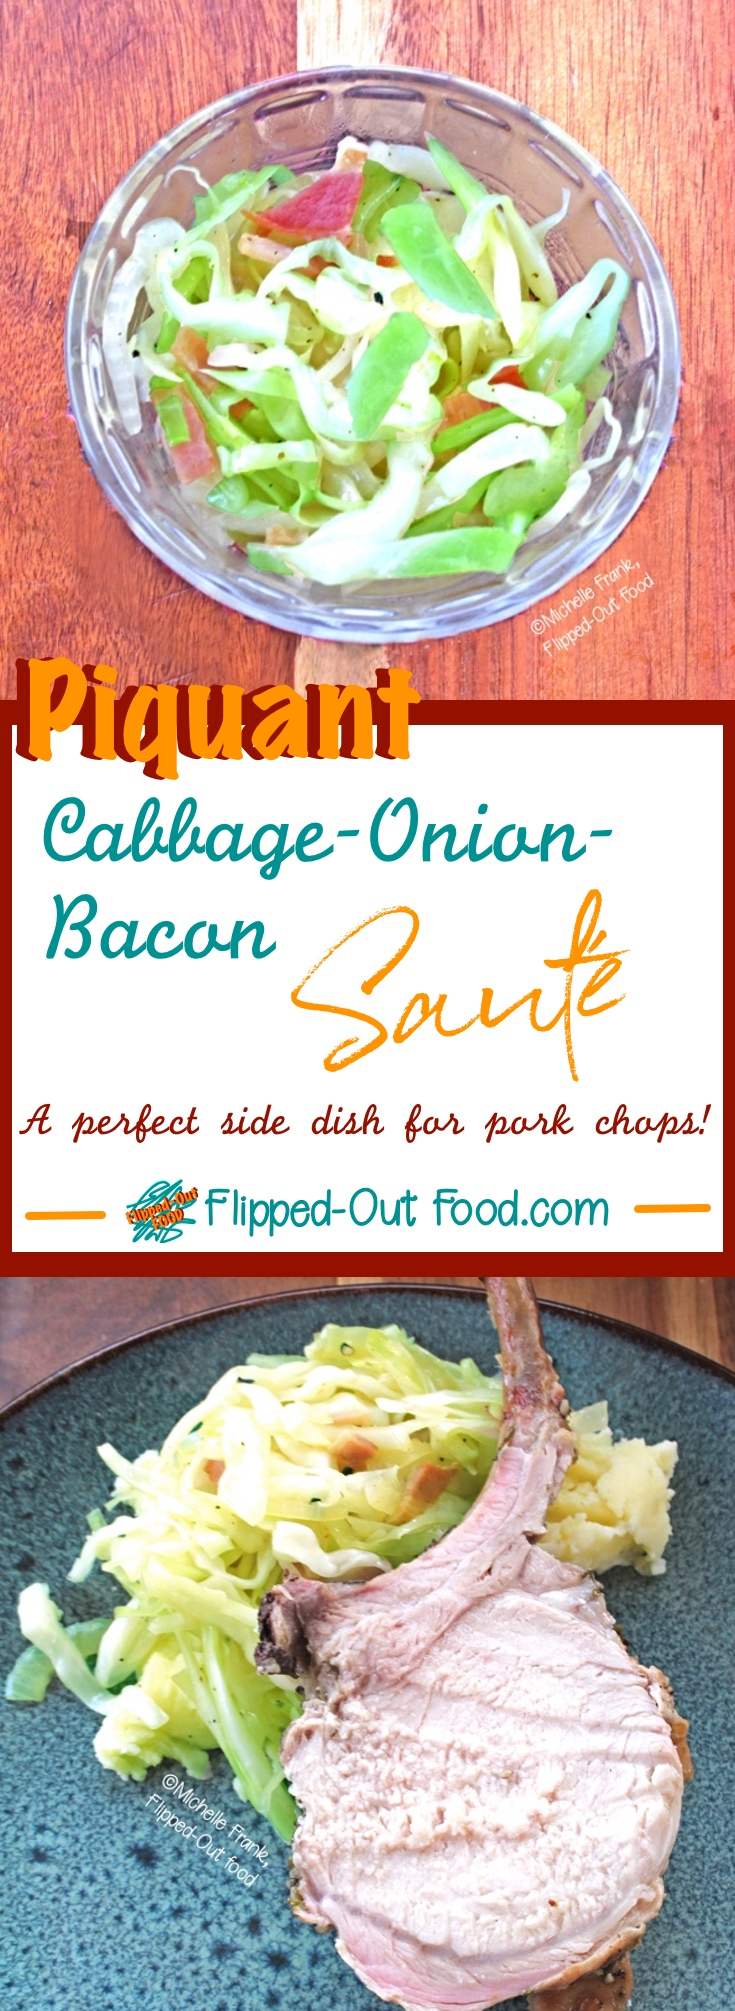 Piquant Cabbage-Bacon-Onion Sauté is great alongside meat—especially pork. This tasty side has just a few healthy ingredients and comes together crazy fast. #sidedish #healthyfood #sauteedcabbage #cabbage